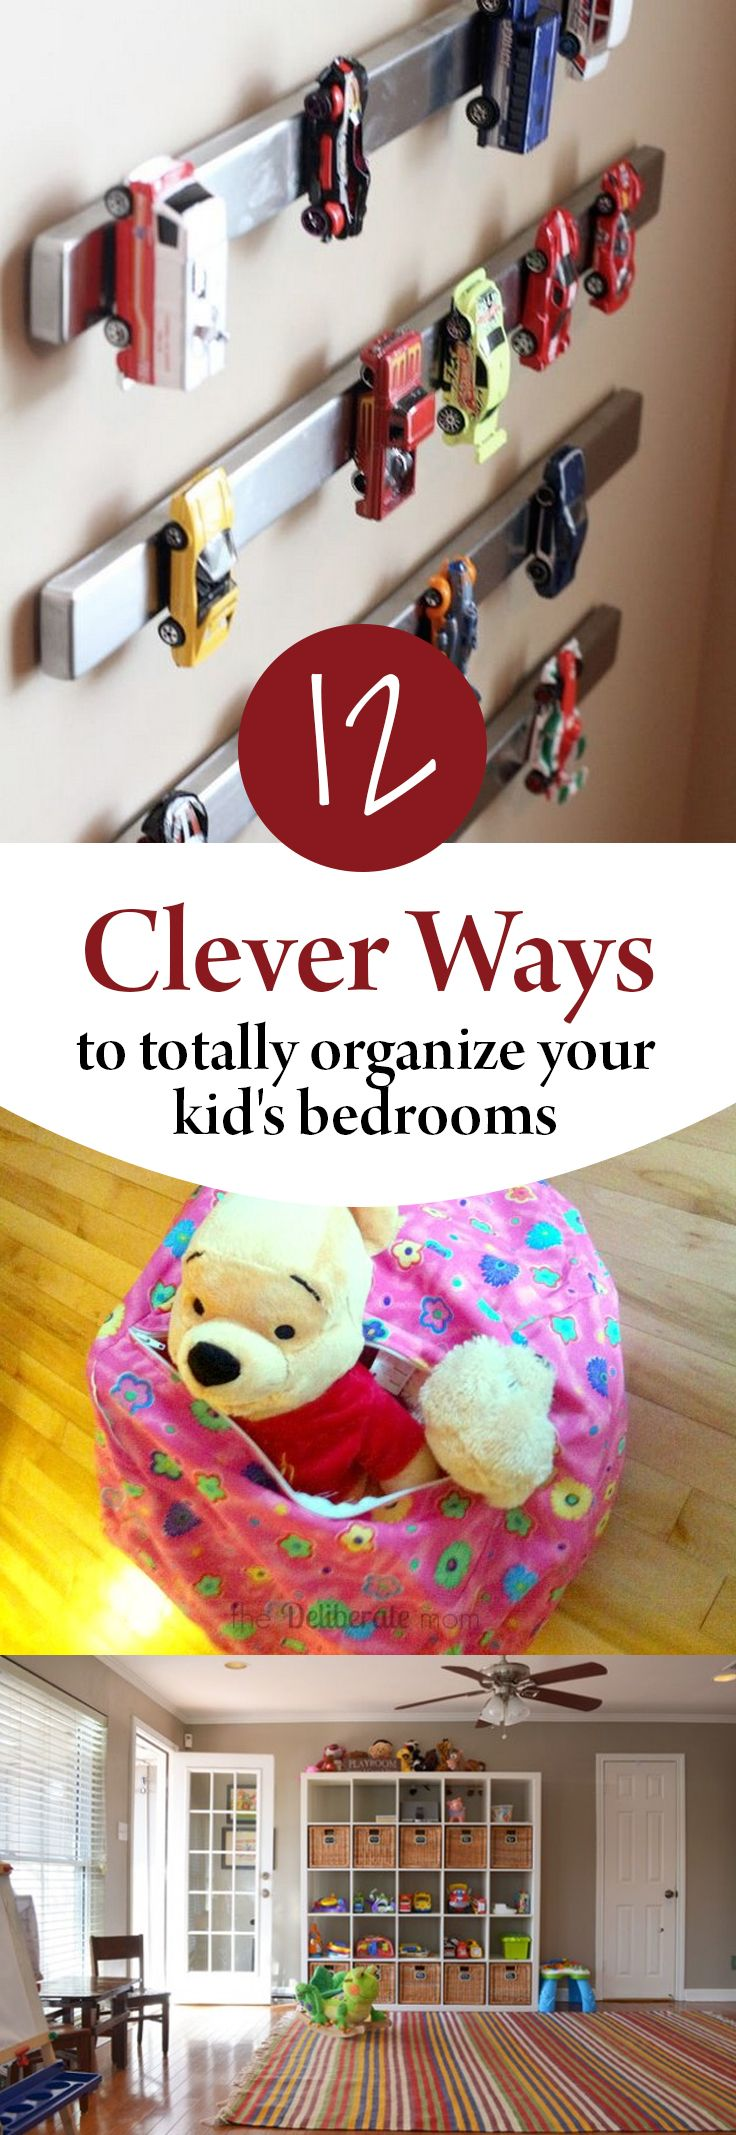 Superior 12 Clever Ways To Totally Organize Your Kidu0027s Bedrooms